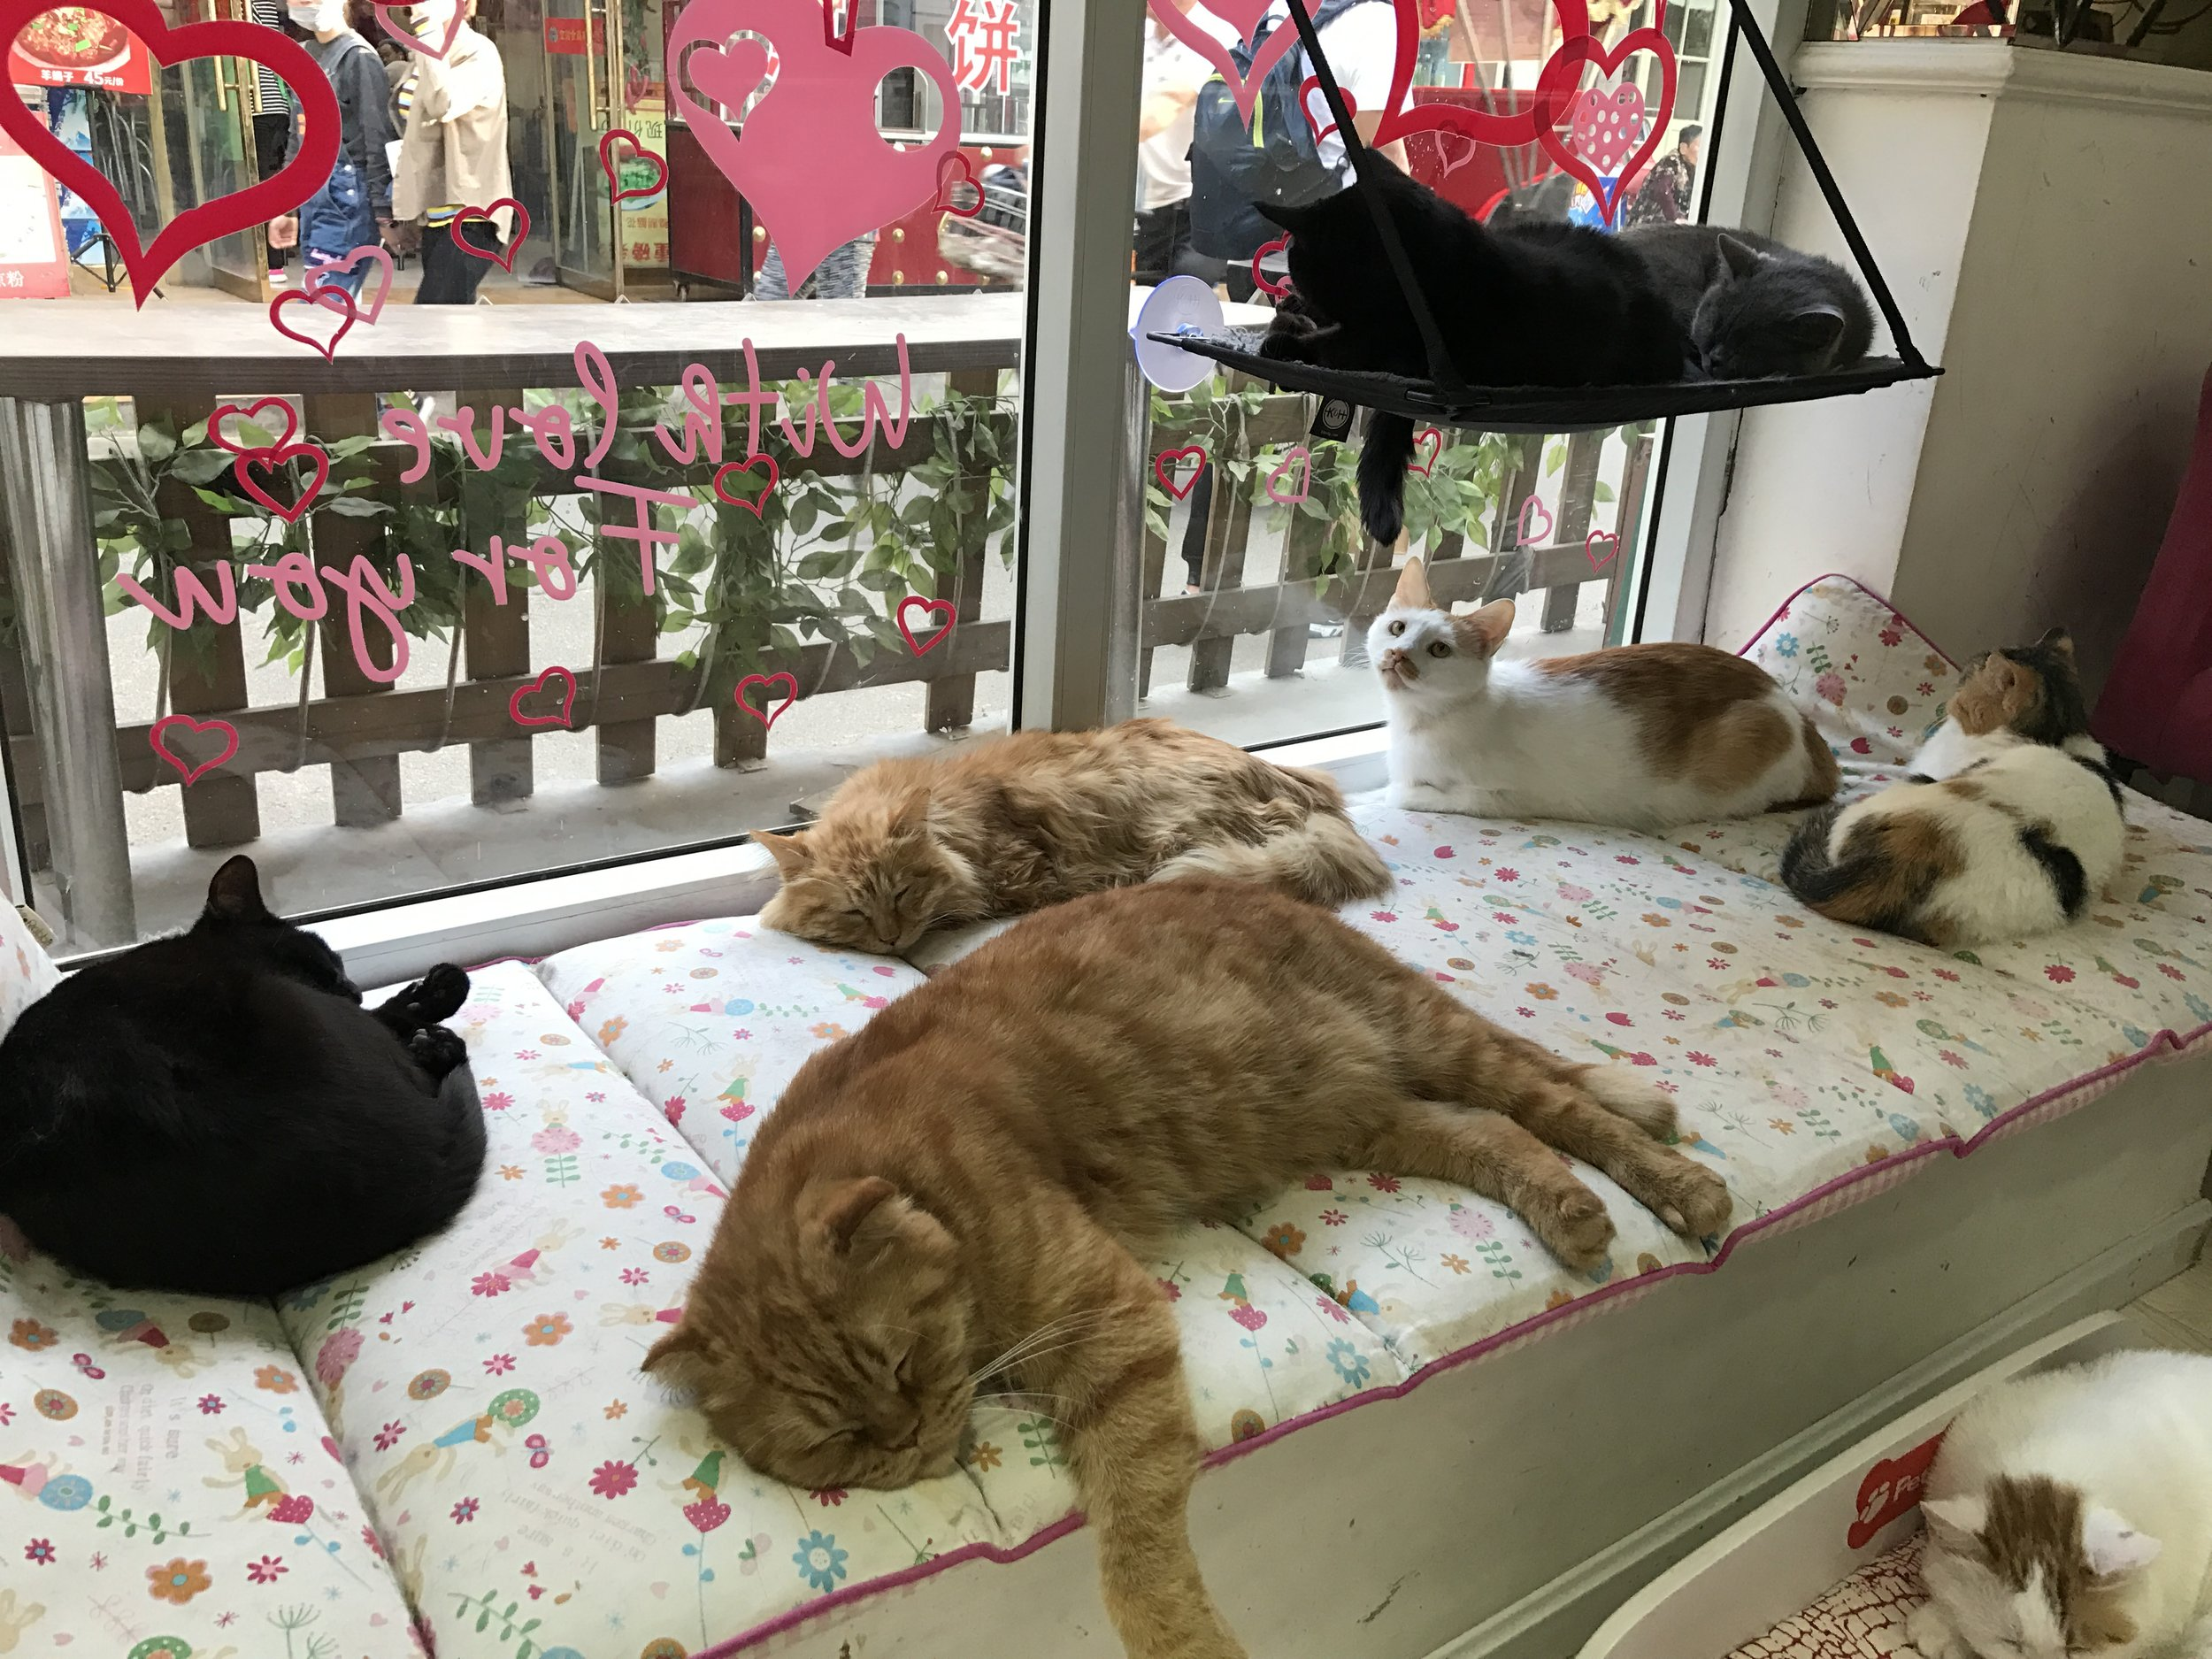 About 30 cats live at Cat Posthouse